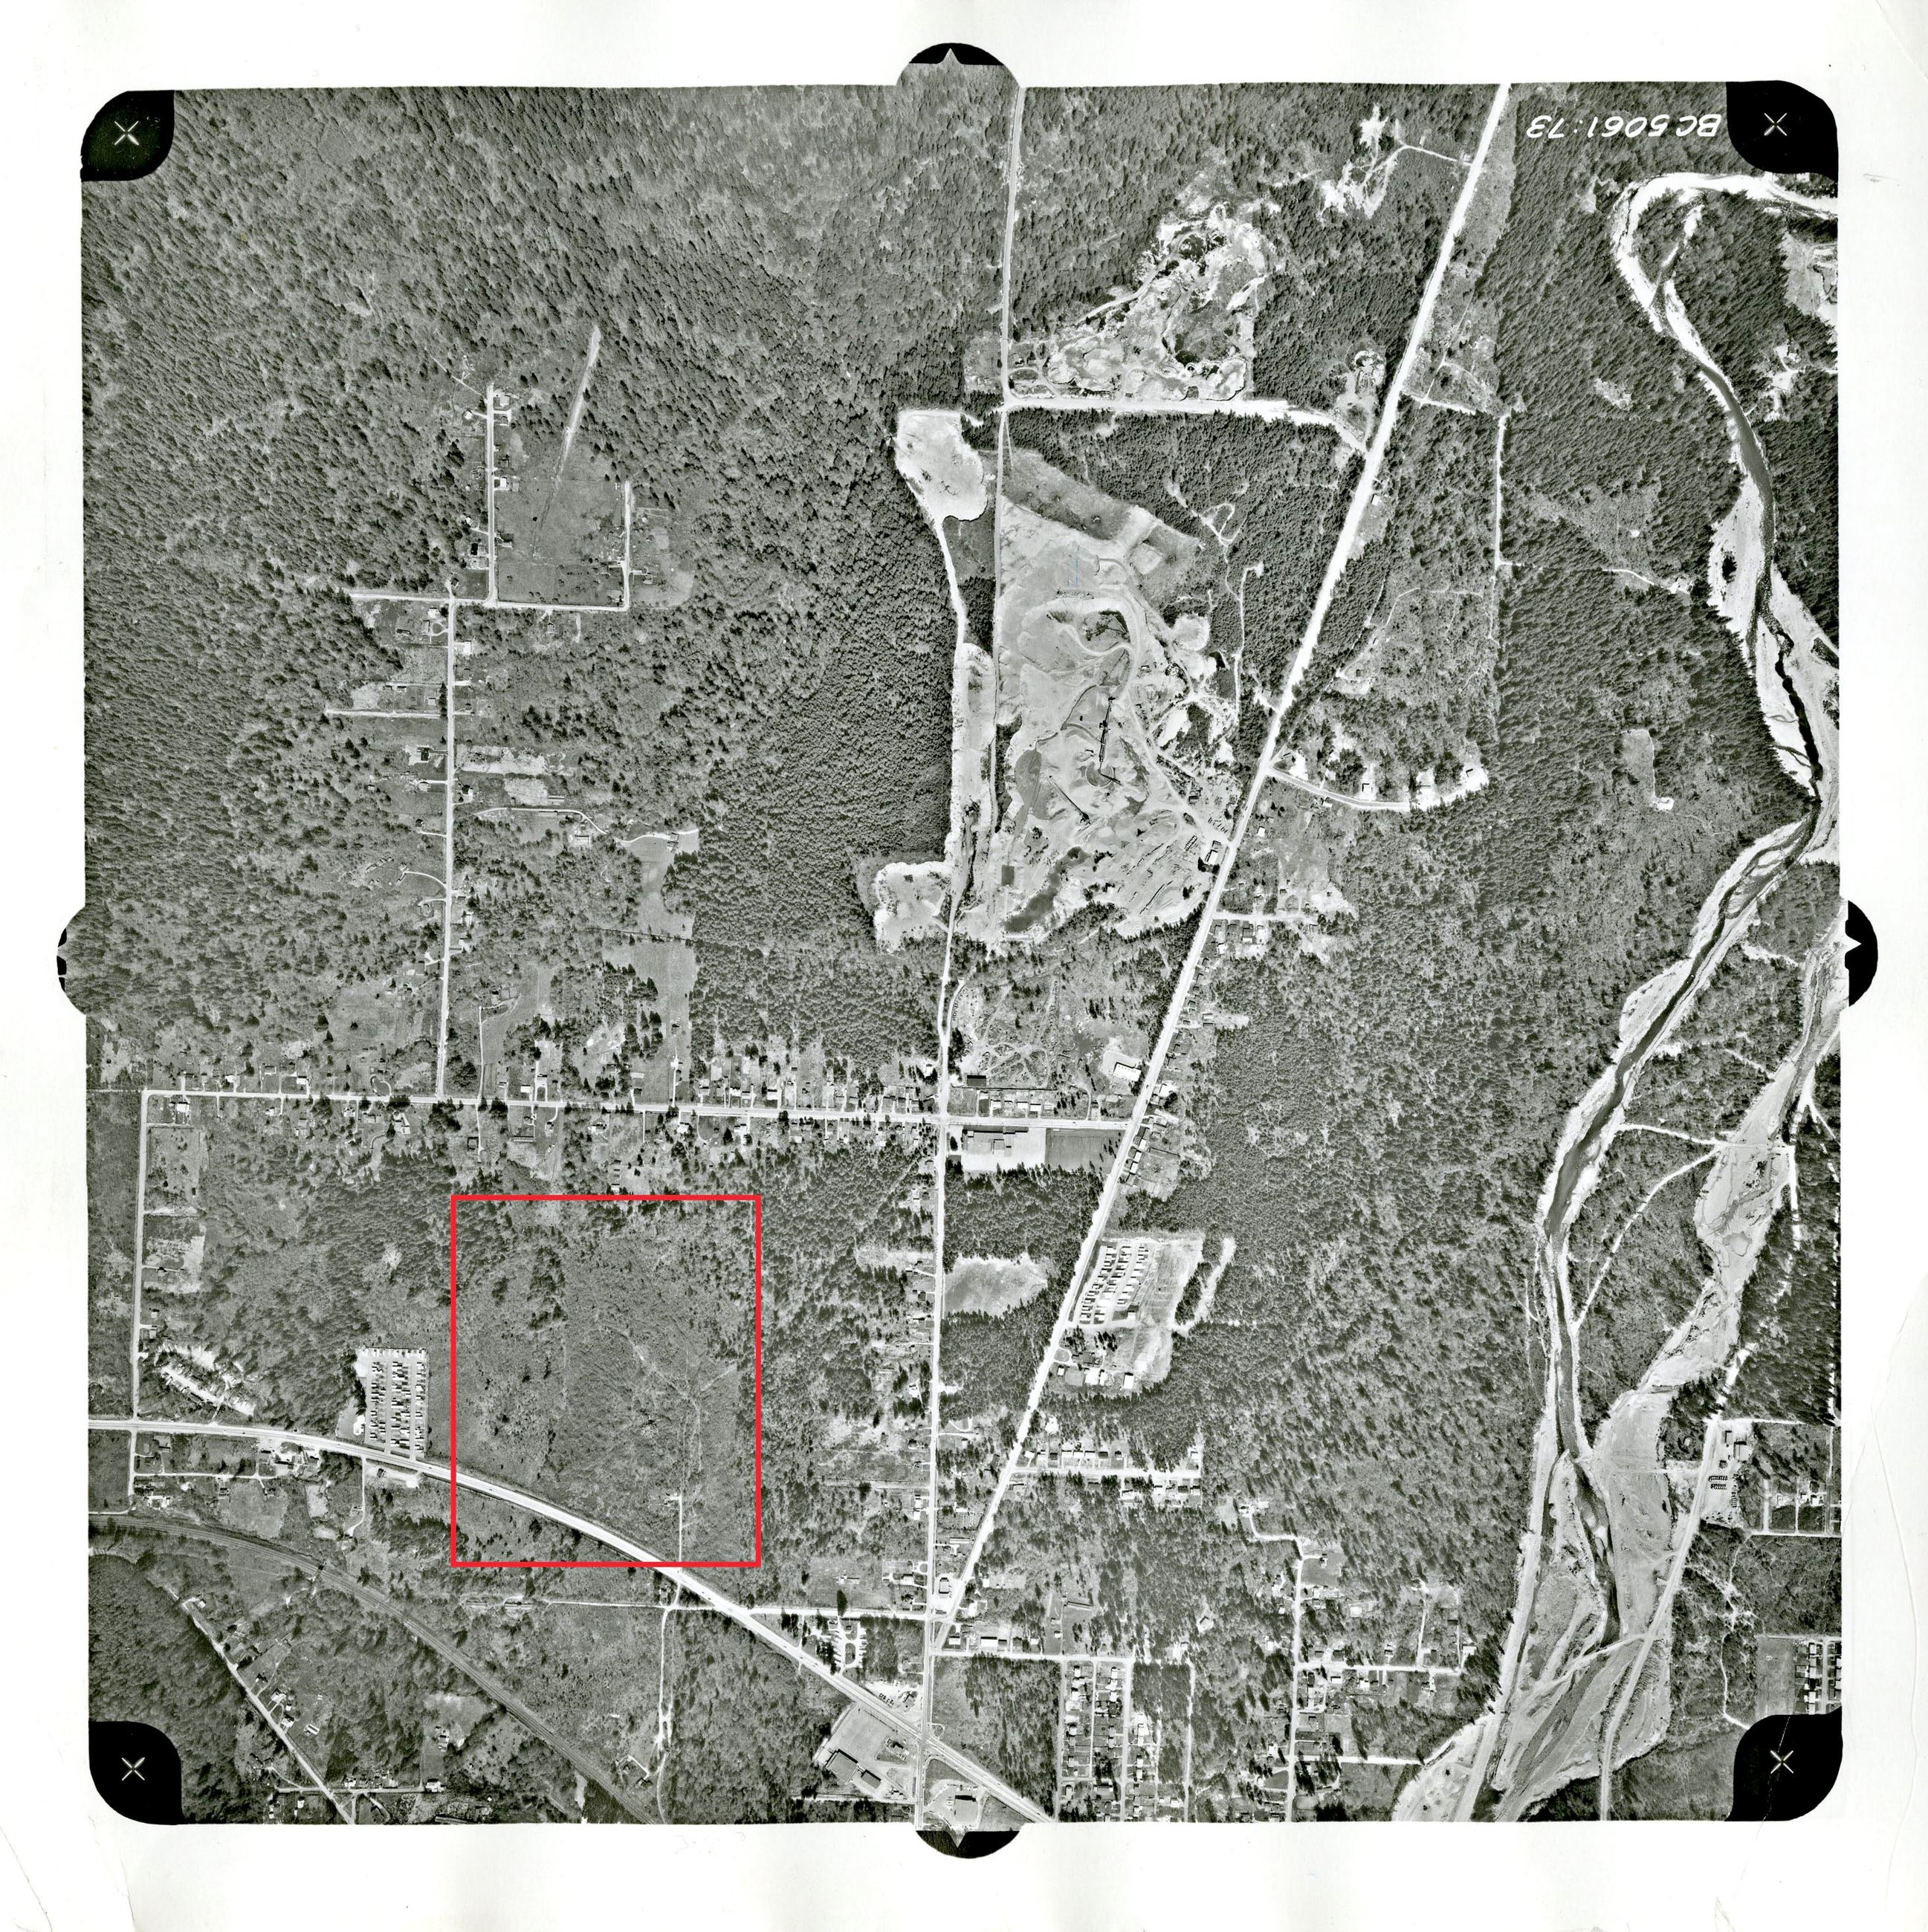 1963 Aerial Photograph (JPG) Opens in new window